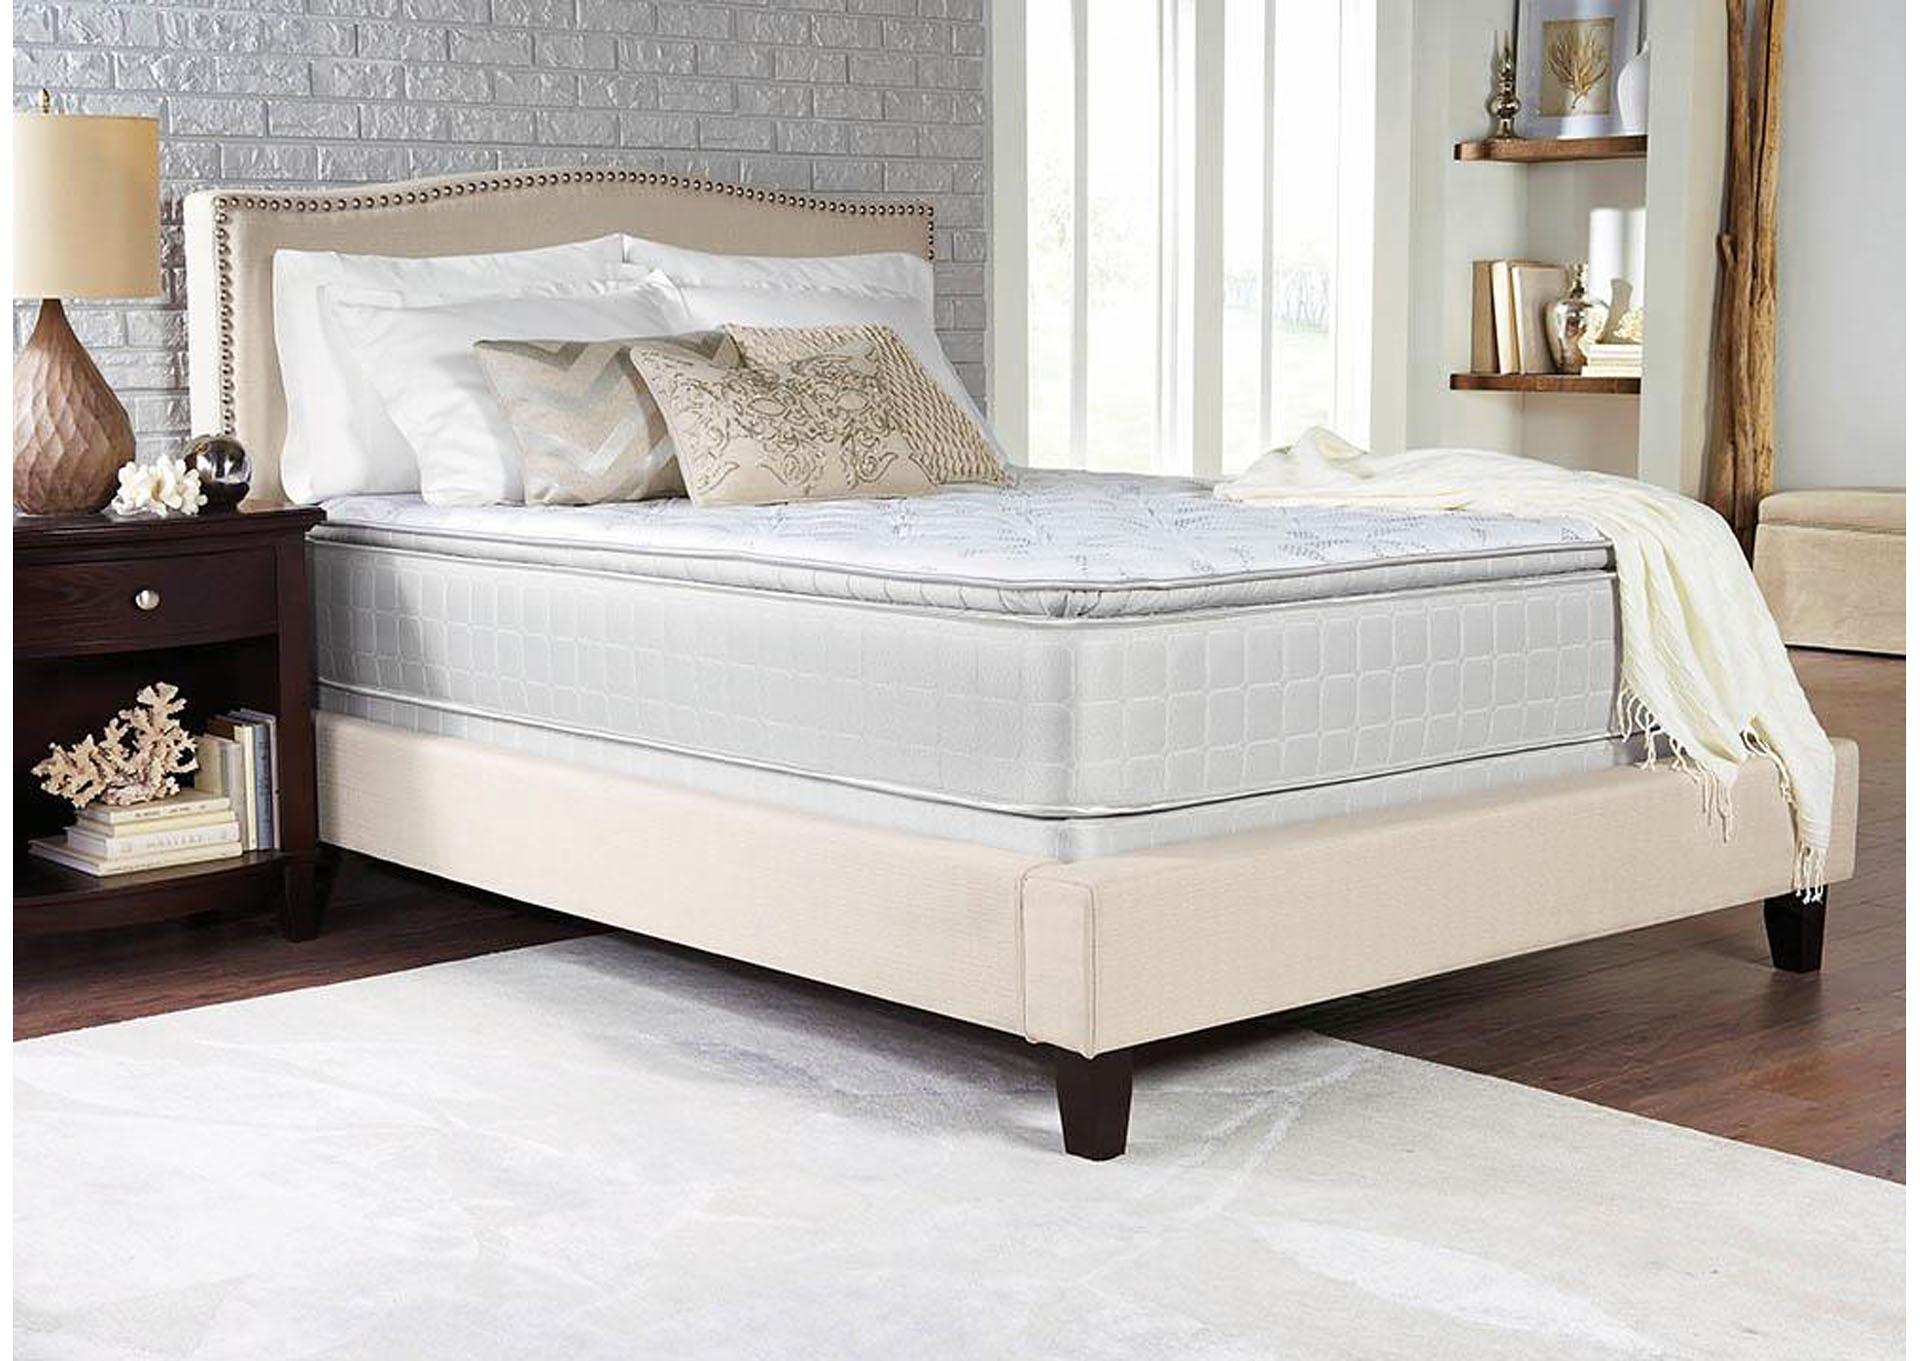 Marbella Pillow Top Twin Mattress,ABF Coaster Furniture